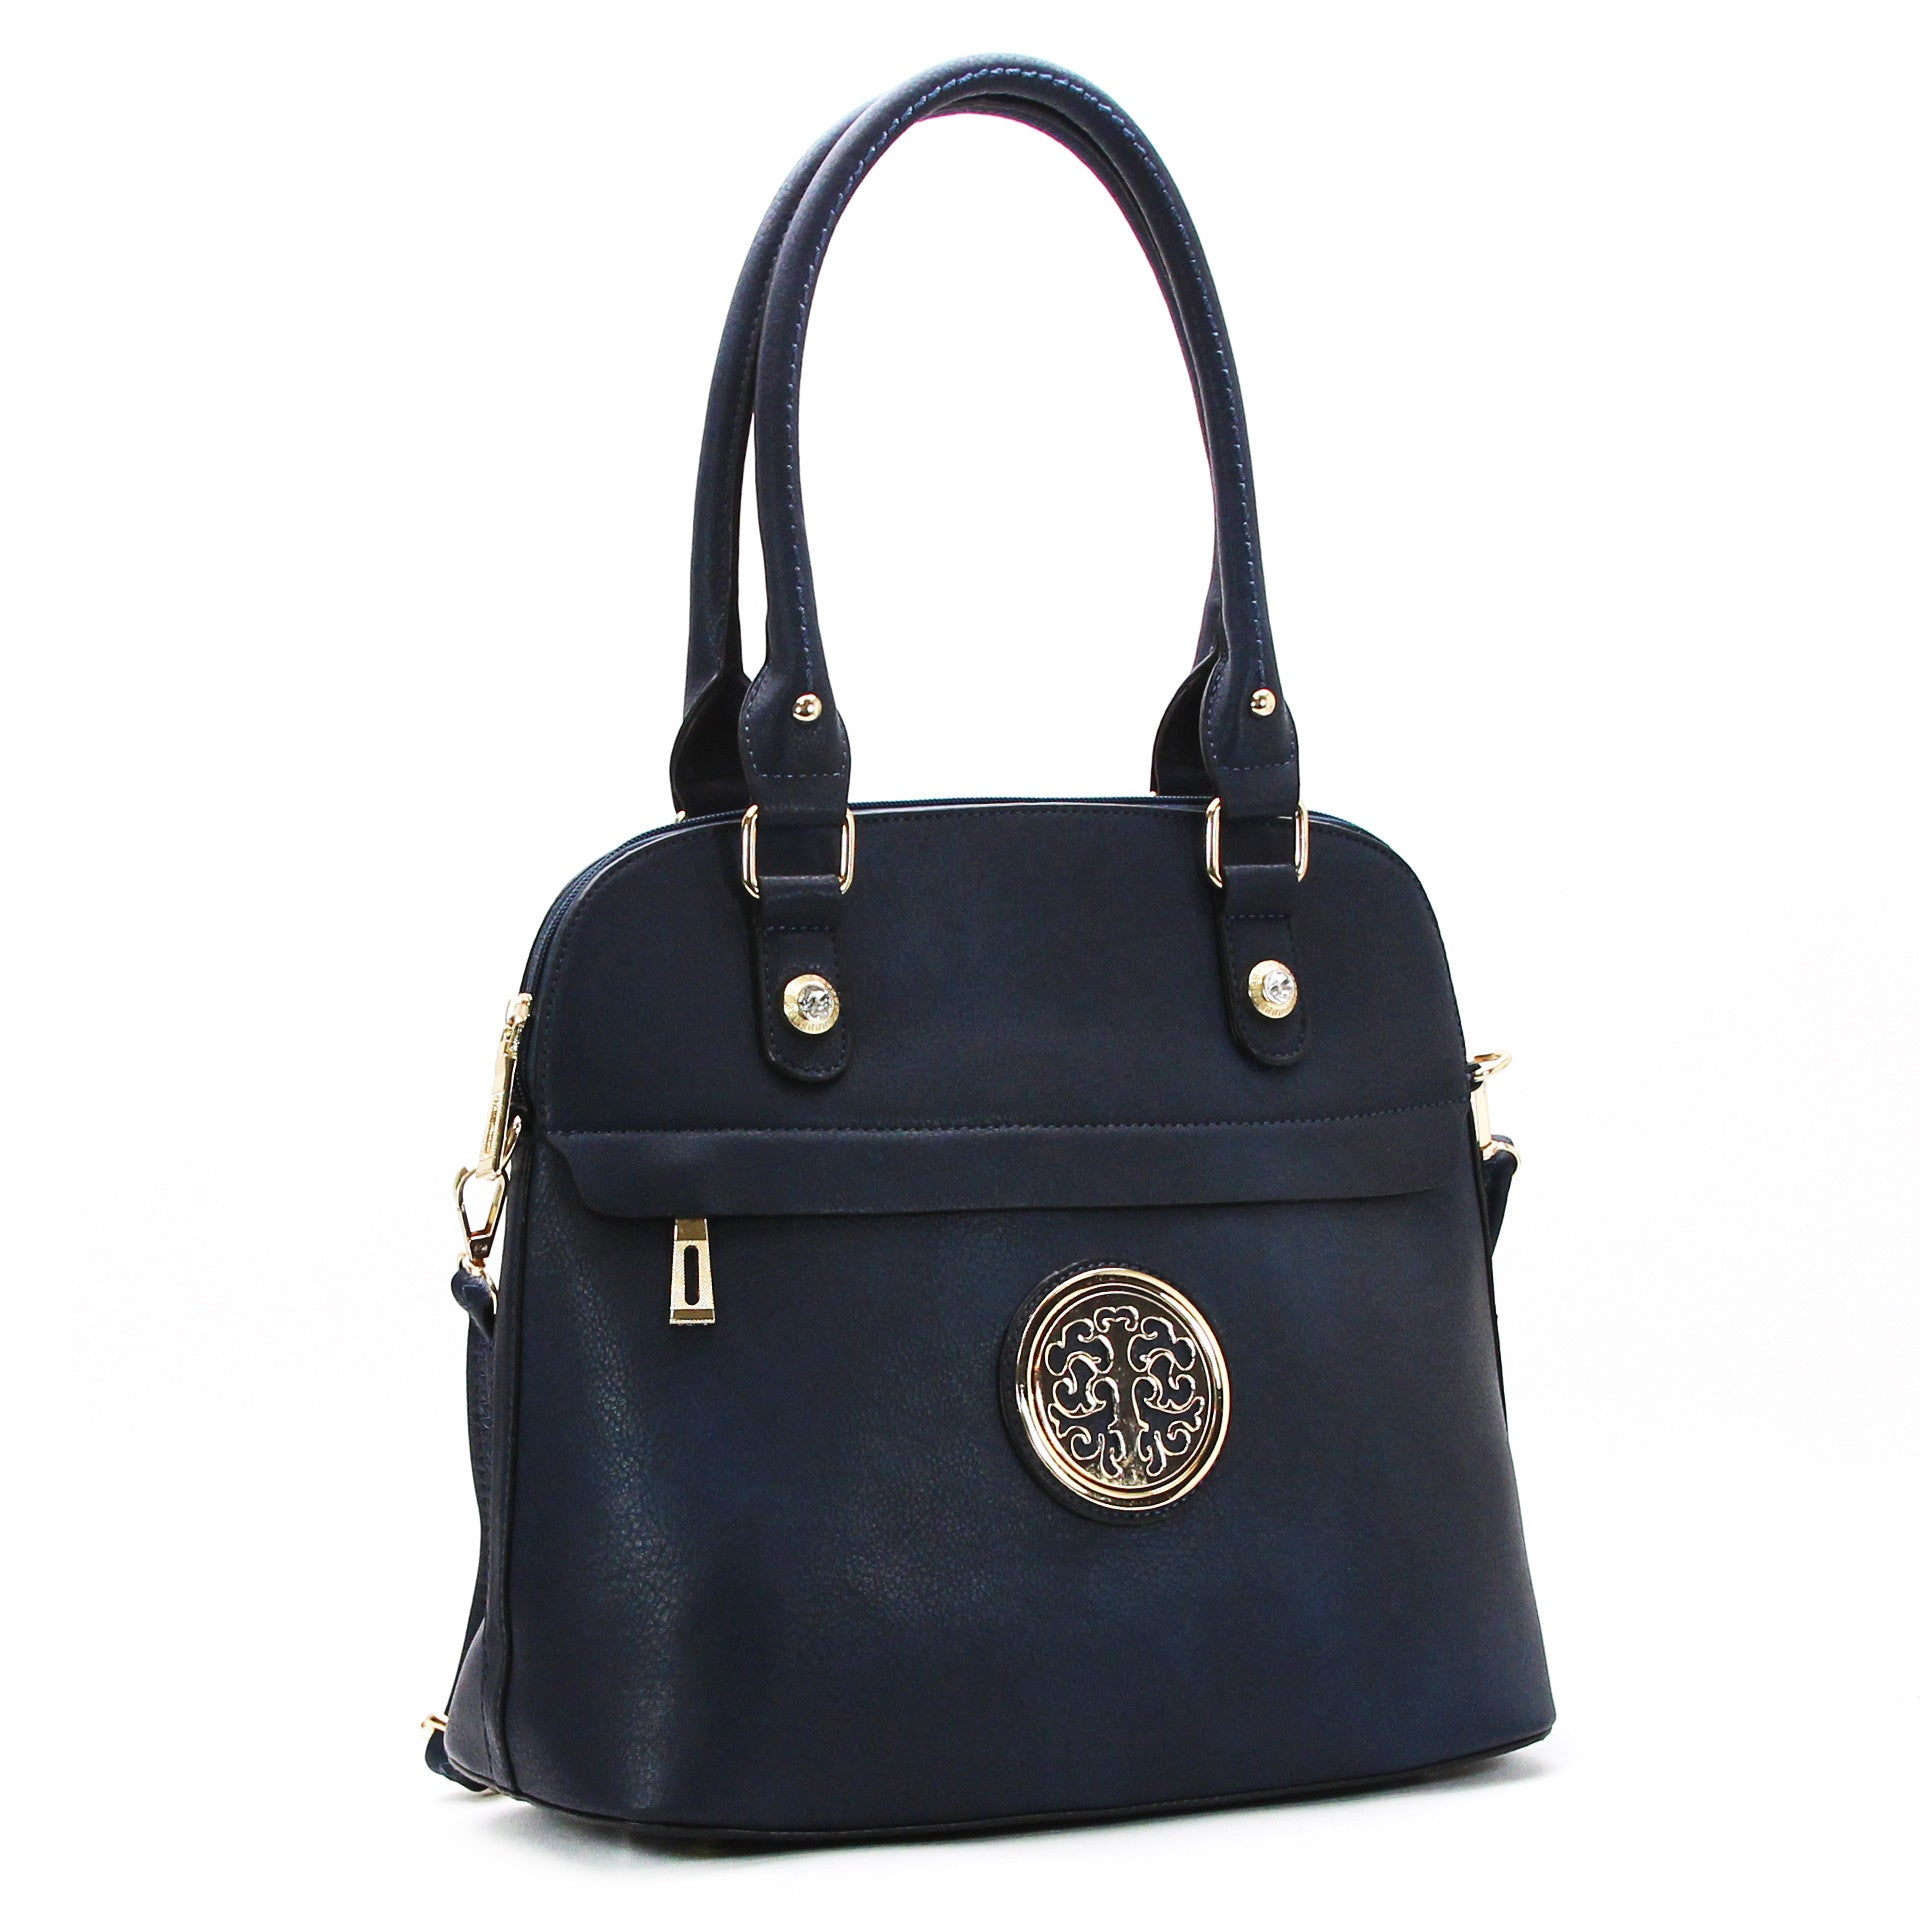 Trendy Dressy Emblem Purse Handbag Tote Bag- Navy - Pop Fashion